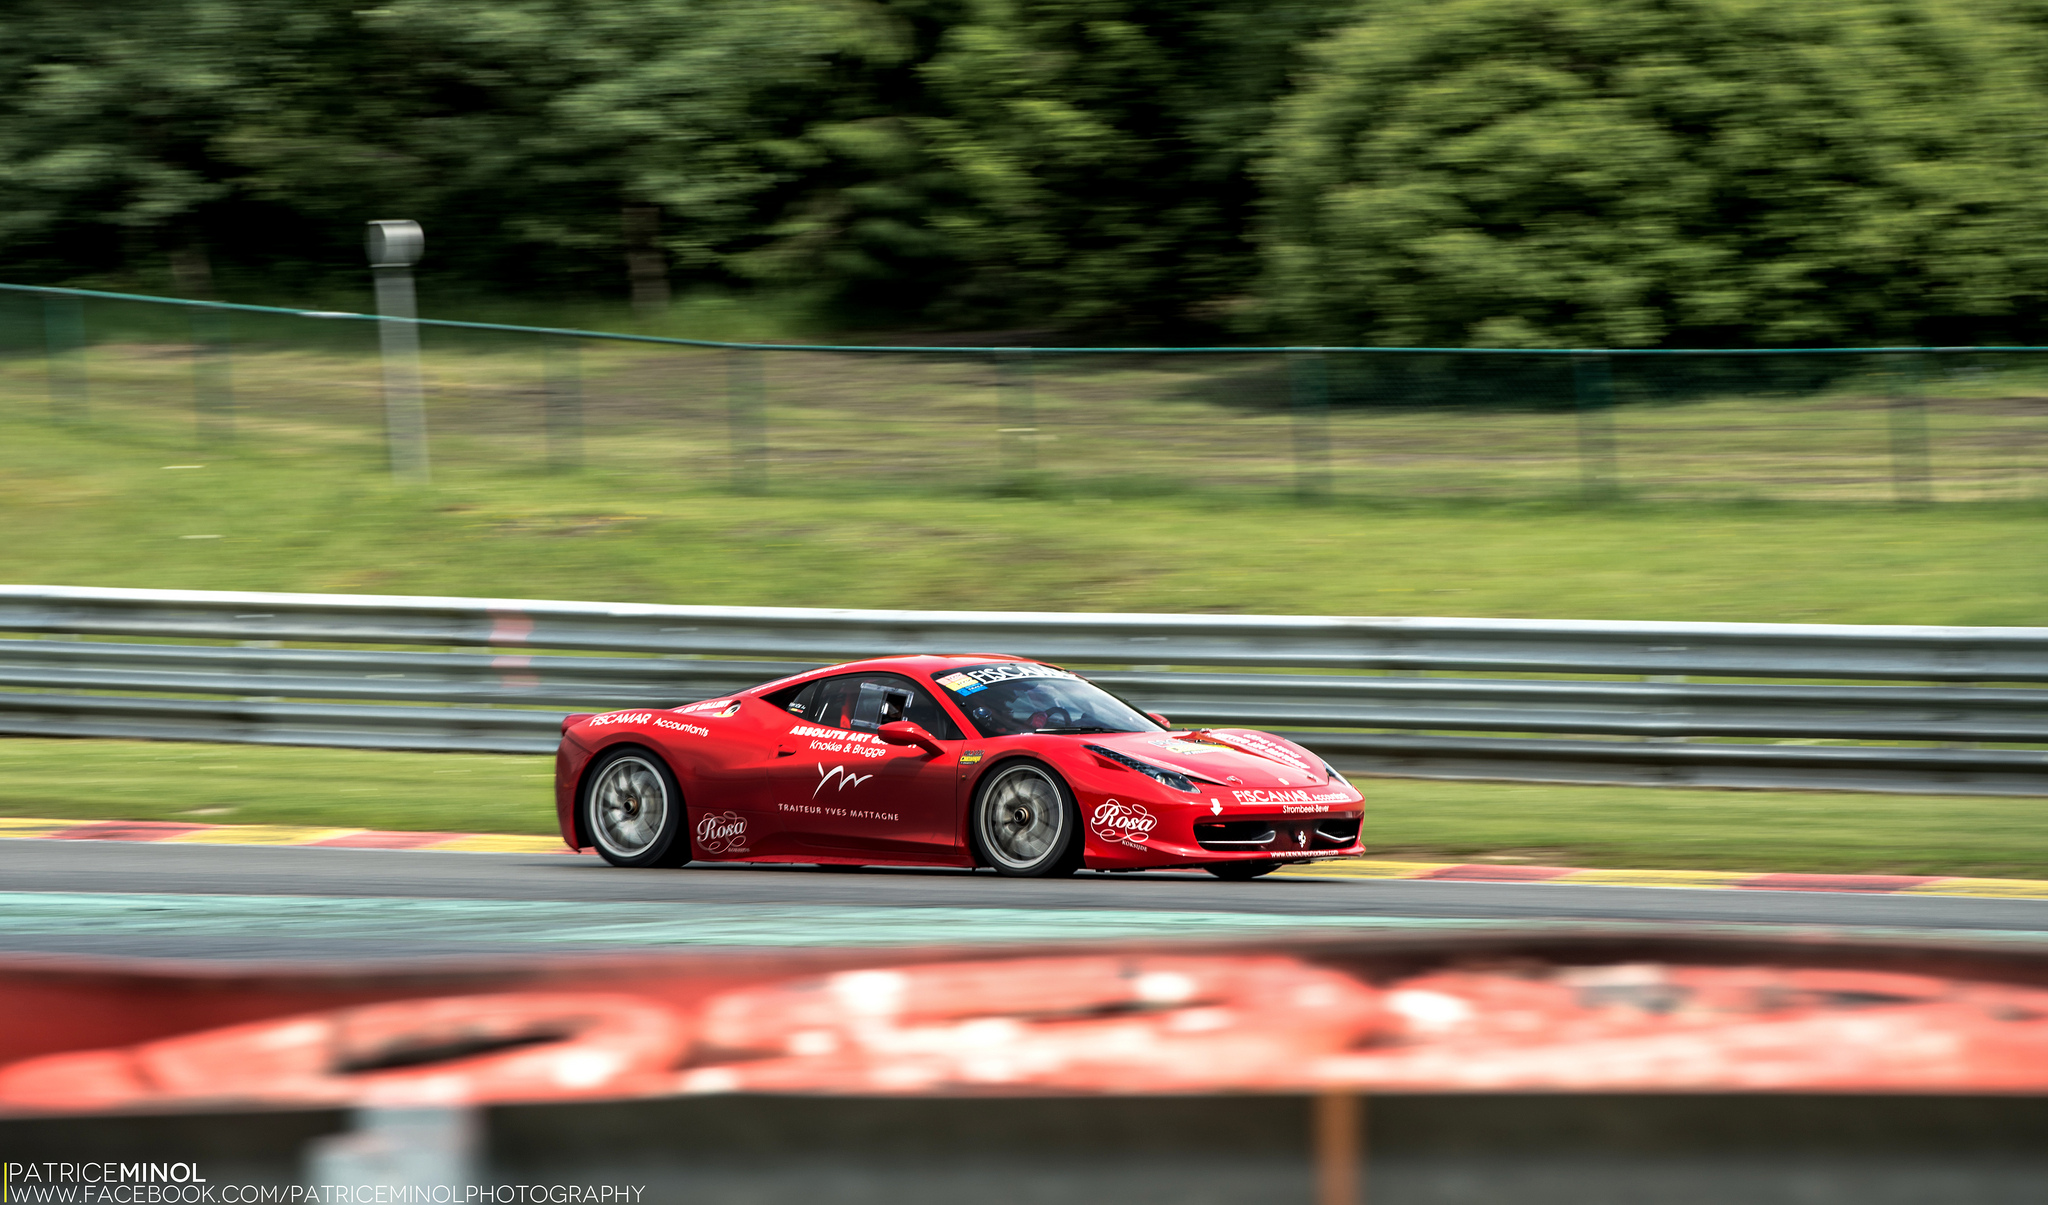 ferrari-owners-days-fod-spa-francorchamps-2013-patrice-minol-photo-f458-challenge